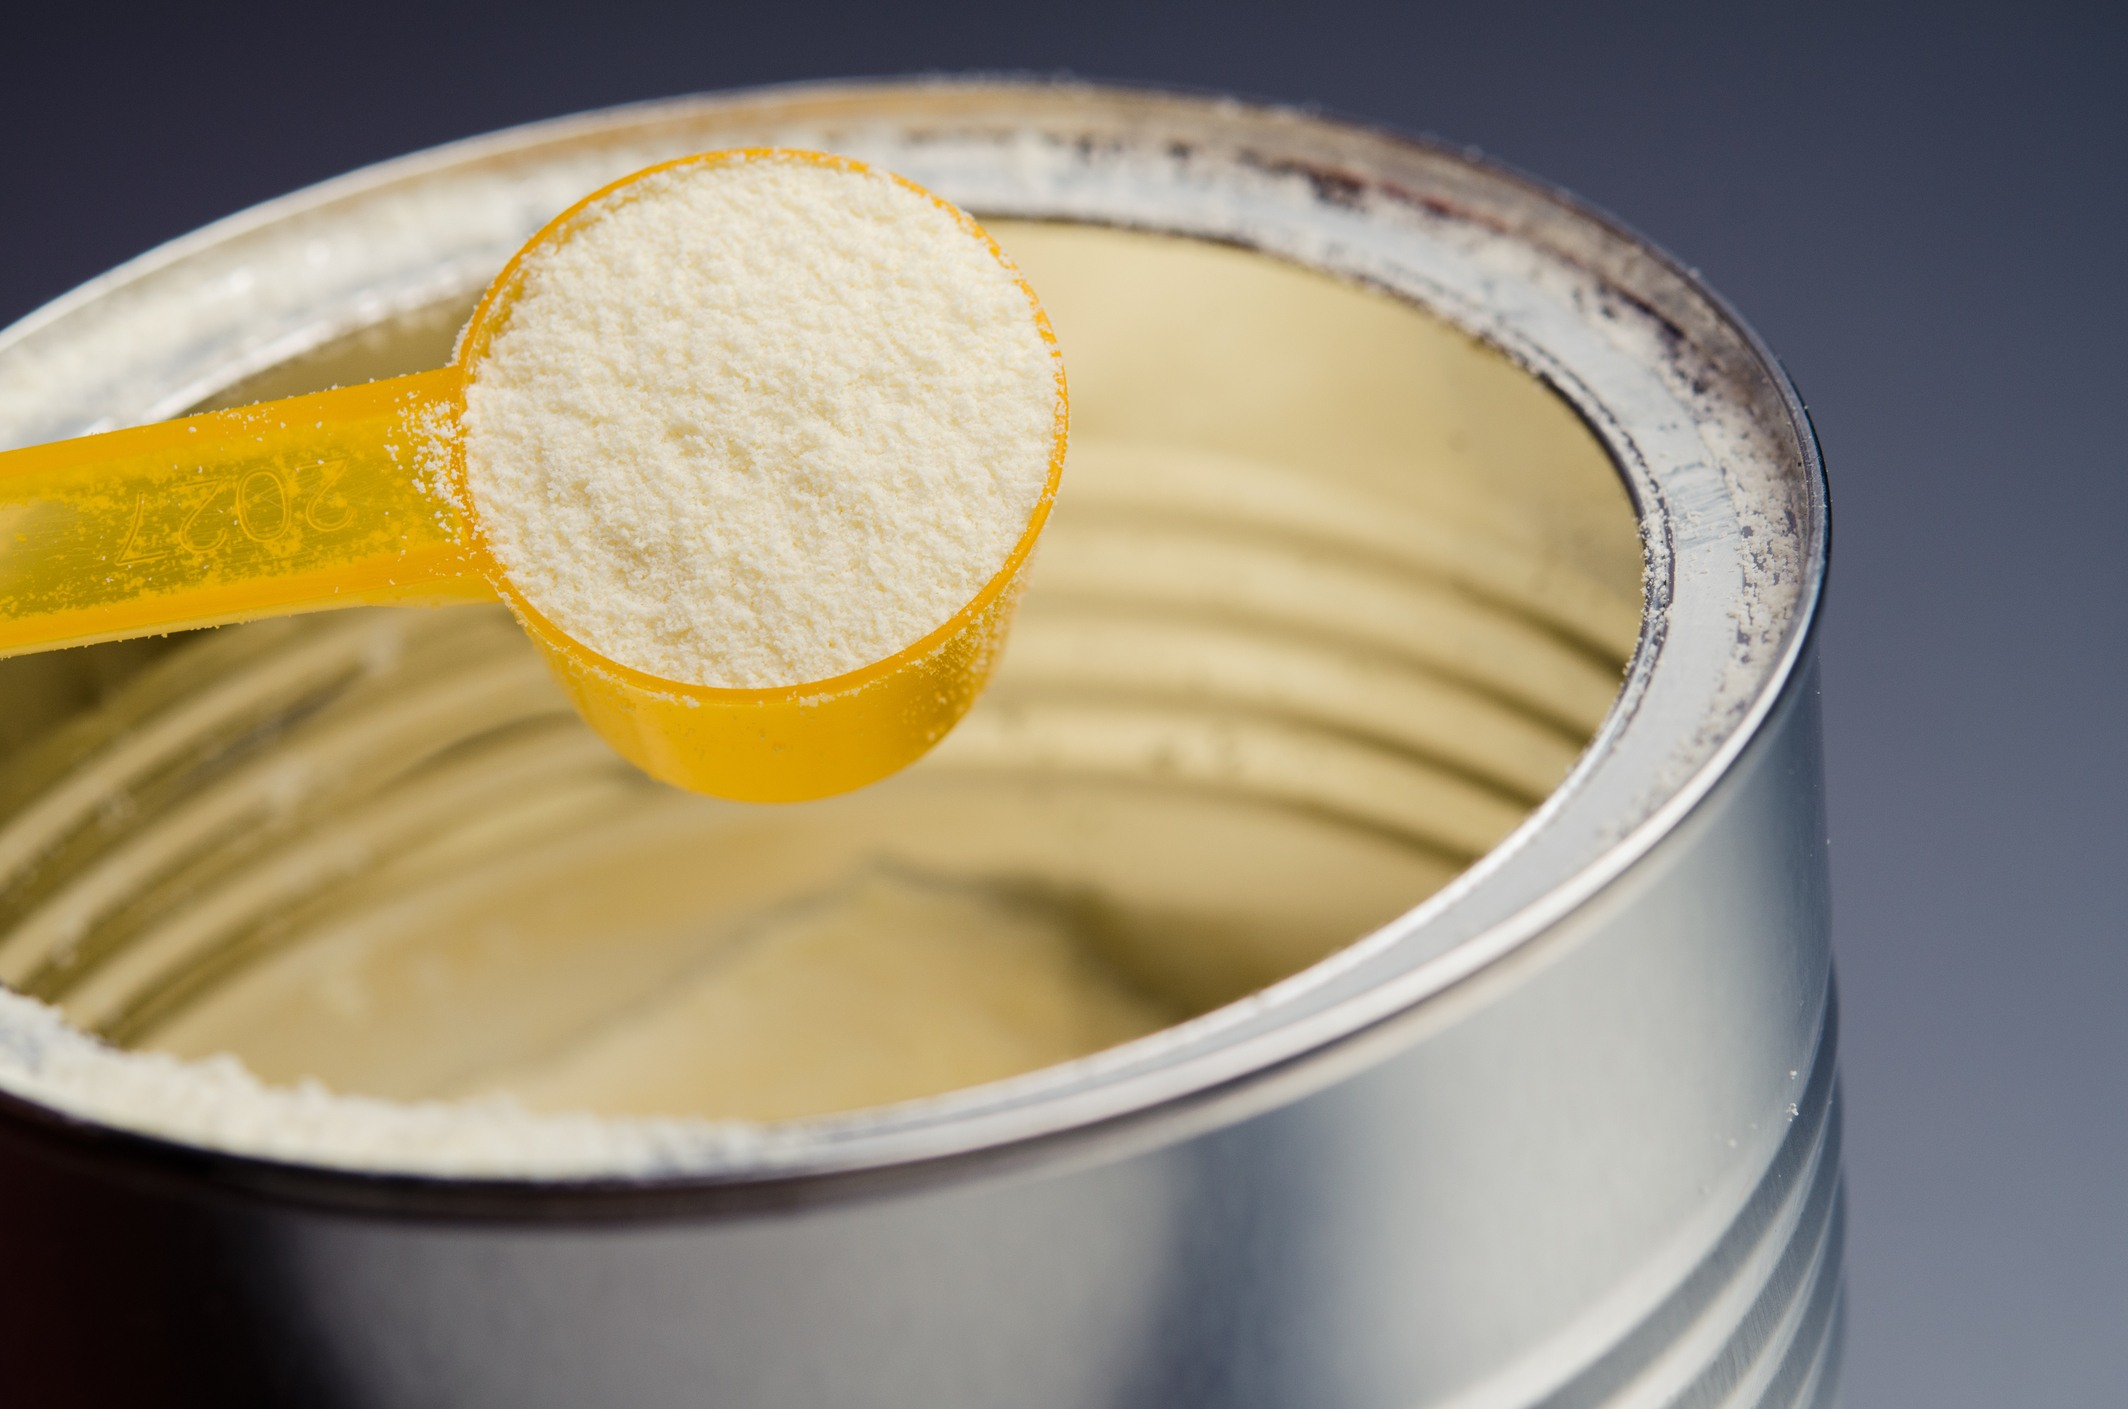 Powdered milk or infant formula